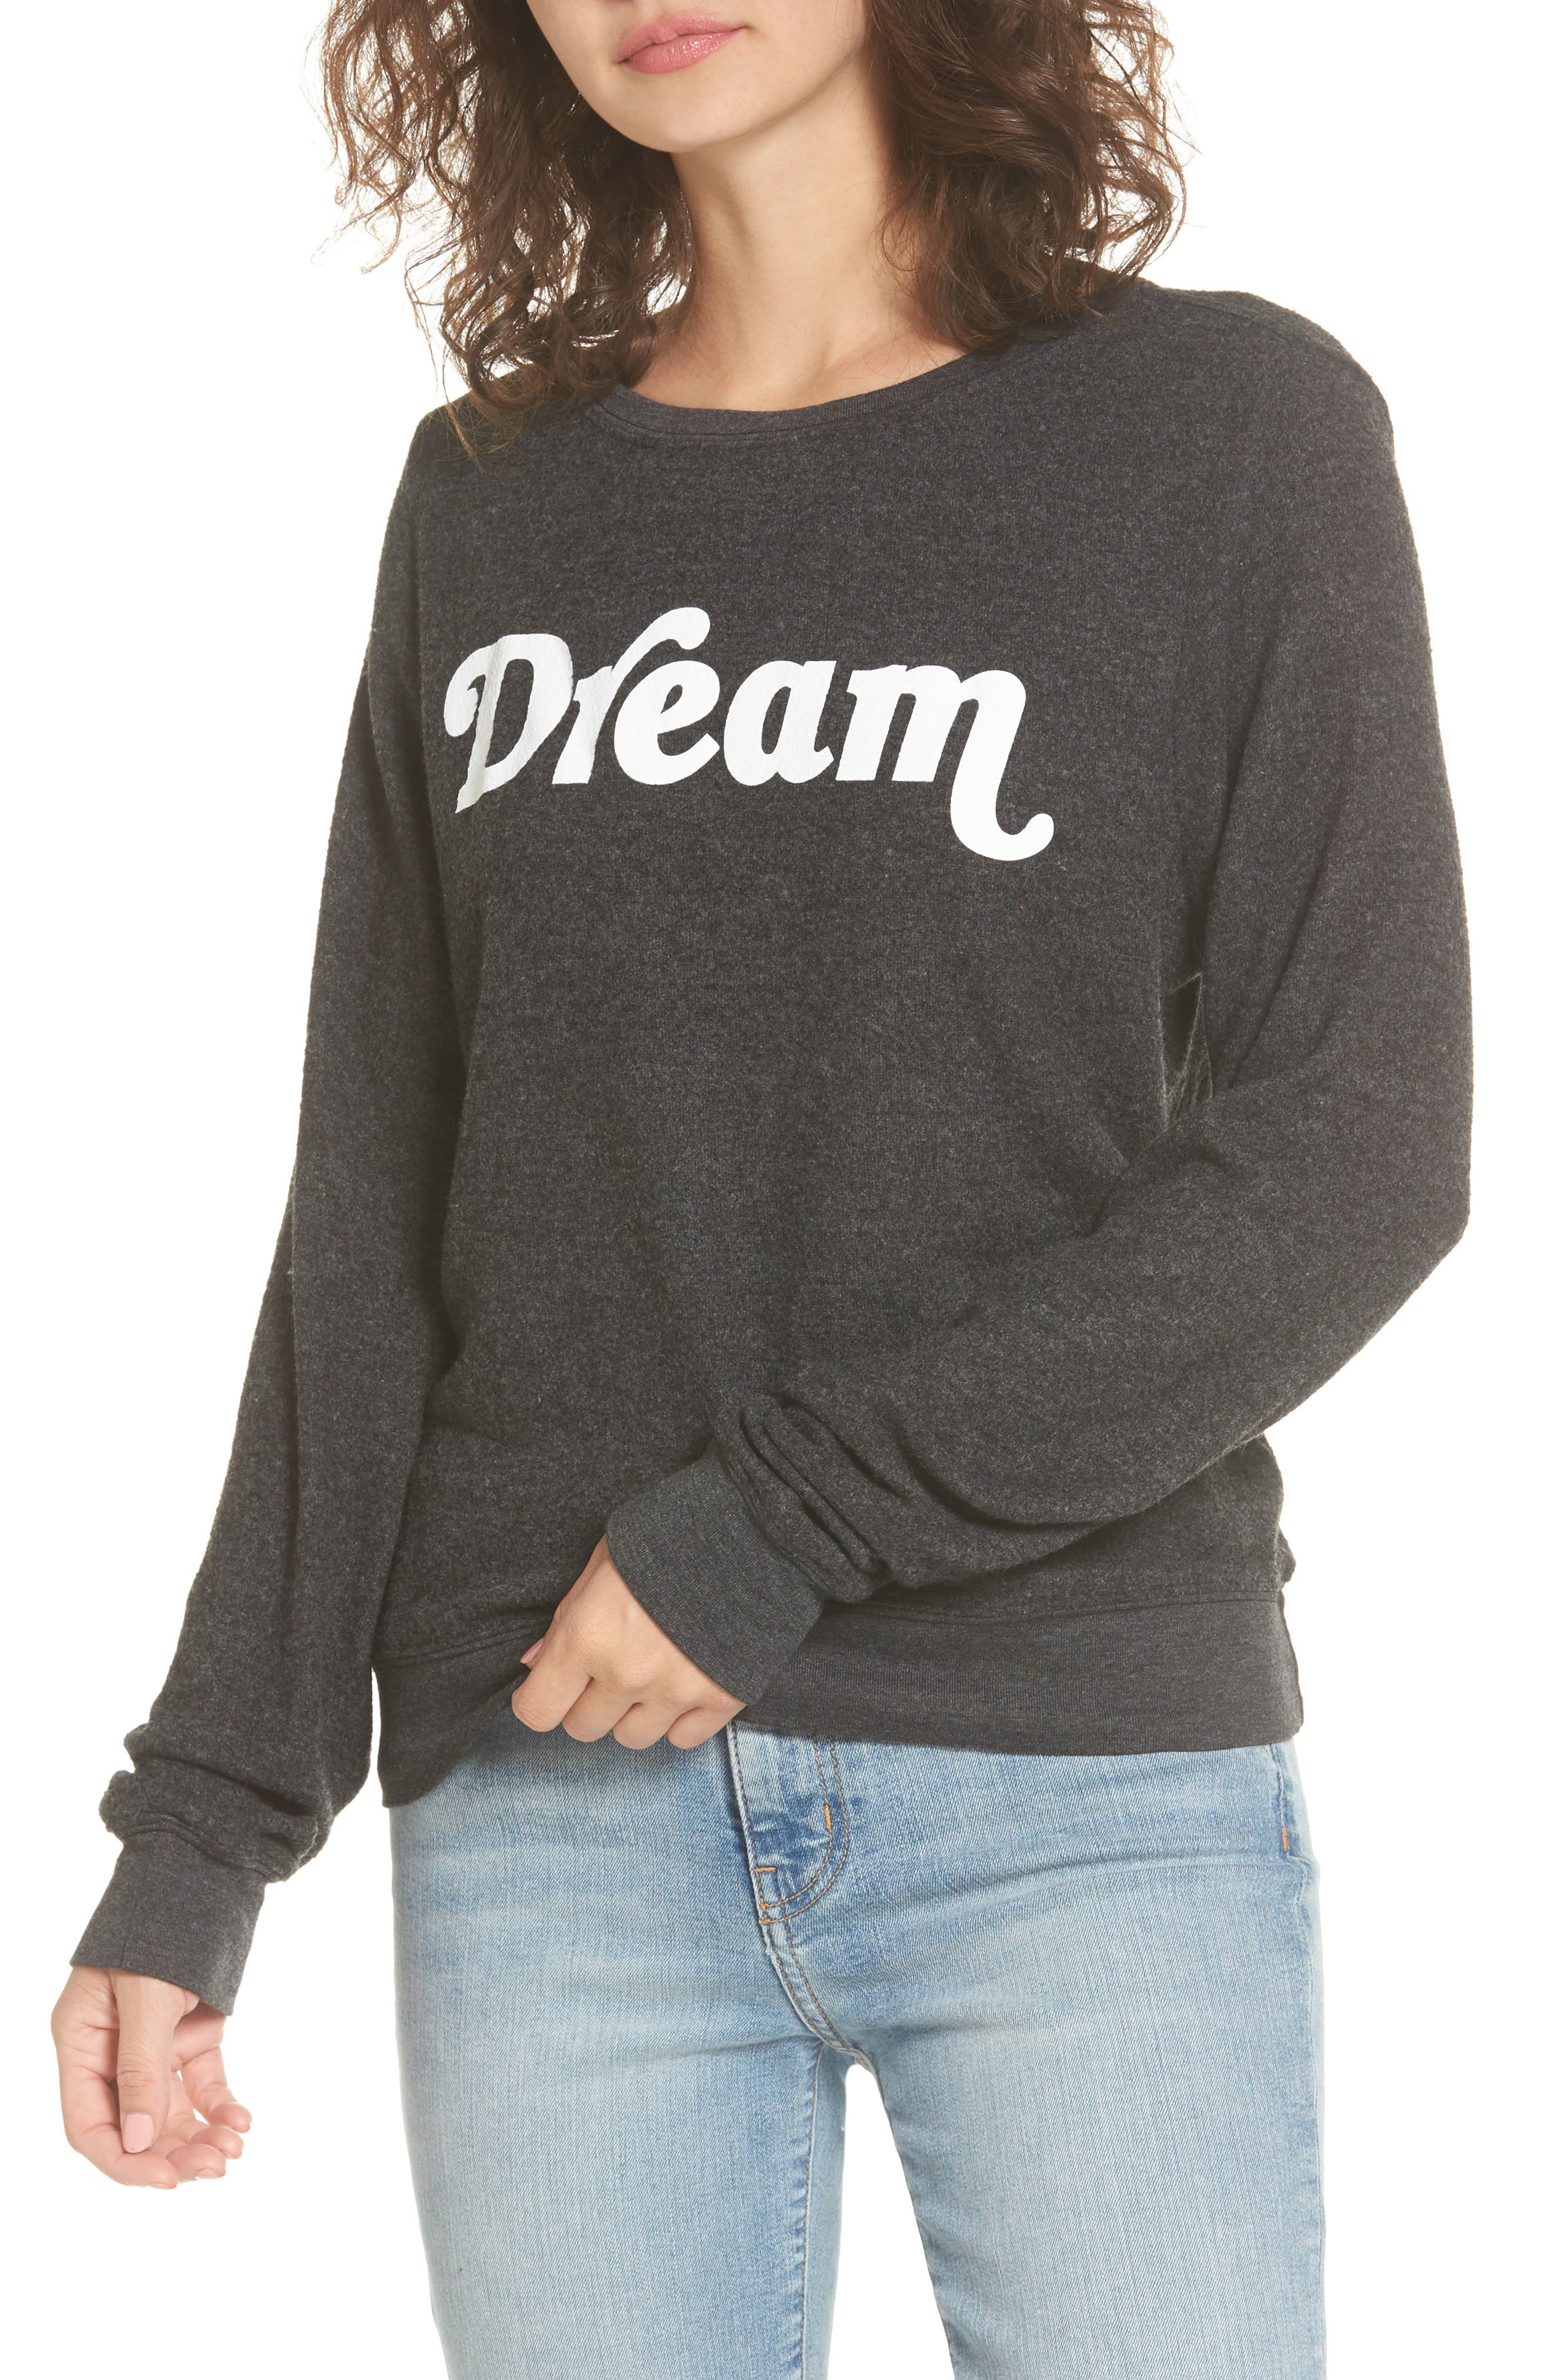 Dream Sweatshirt,                             Main thumbnail 1, color,                             001